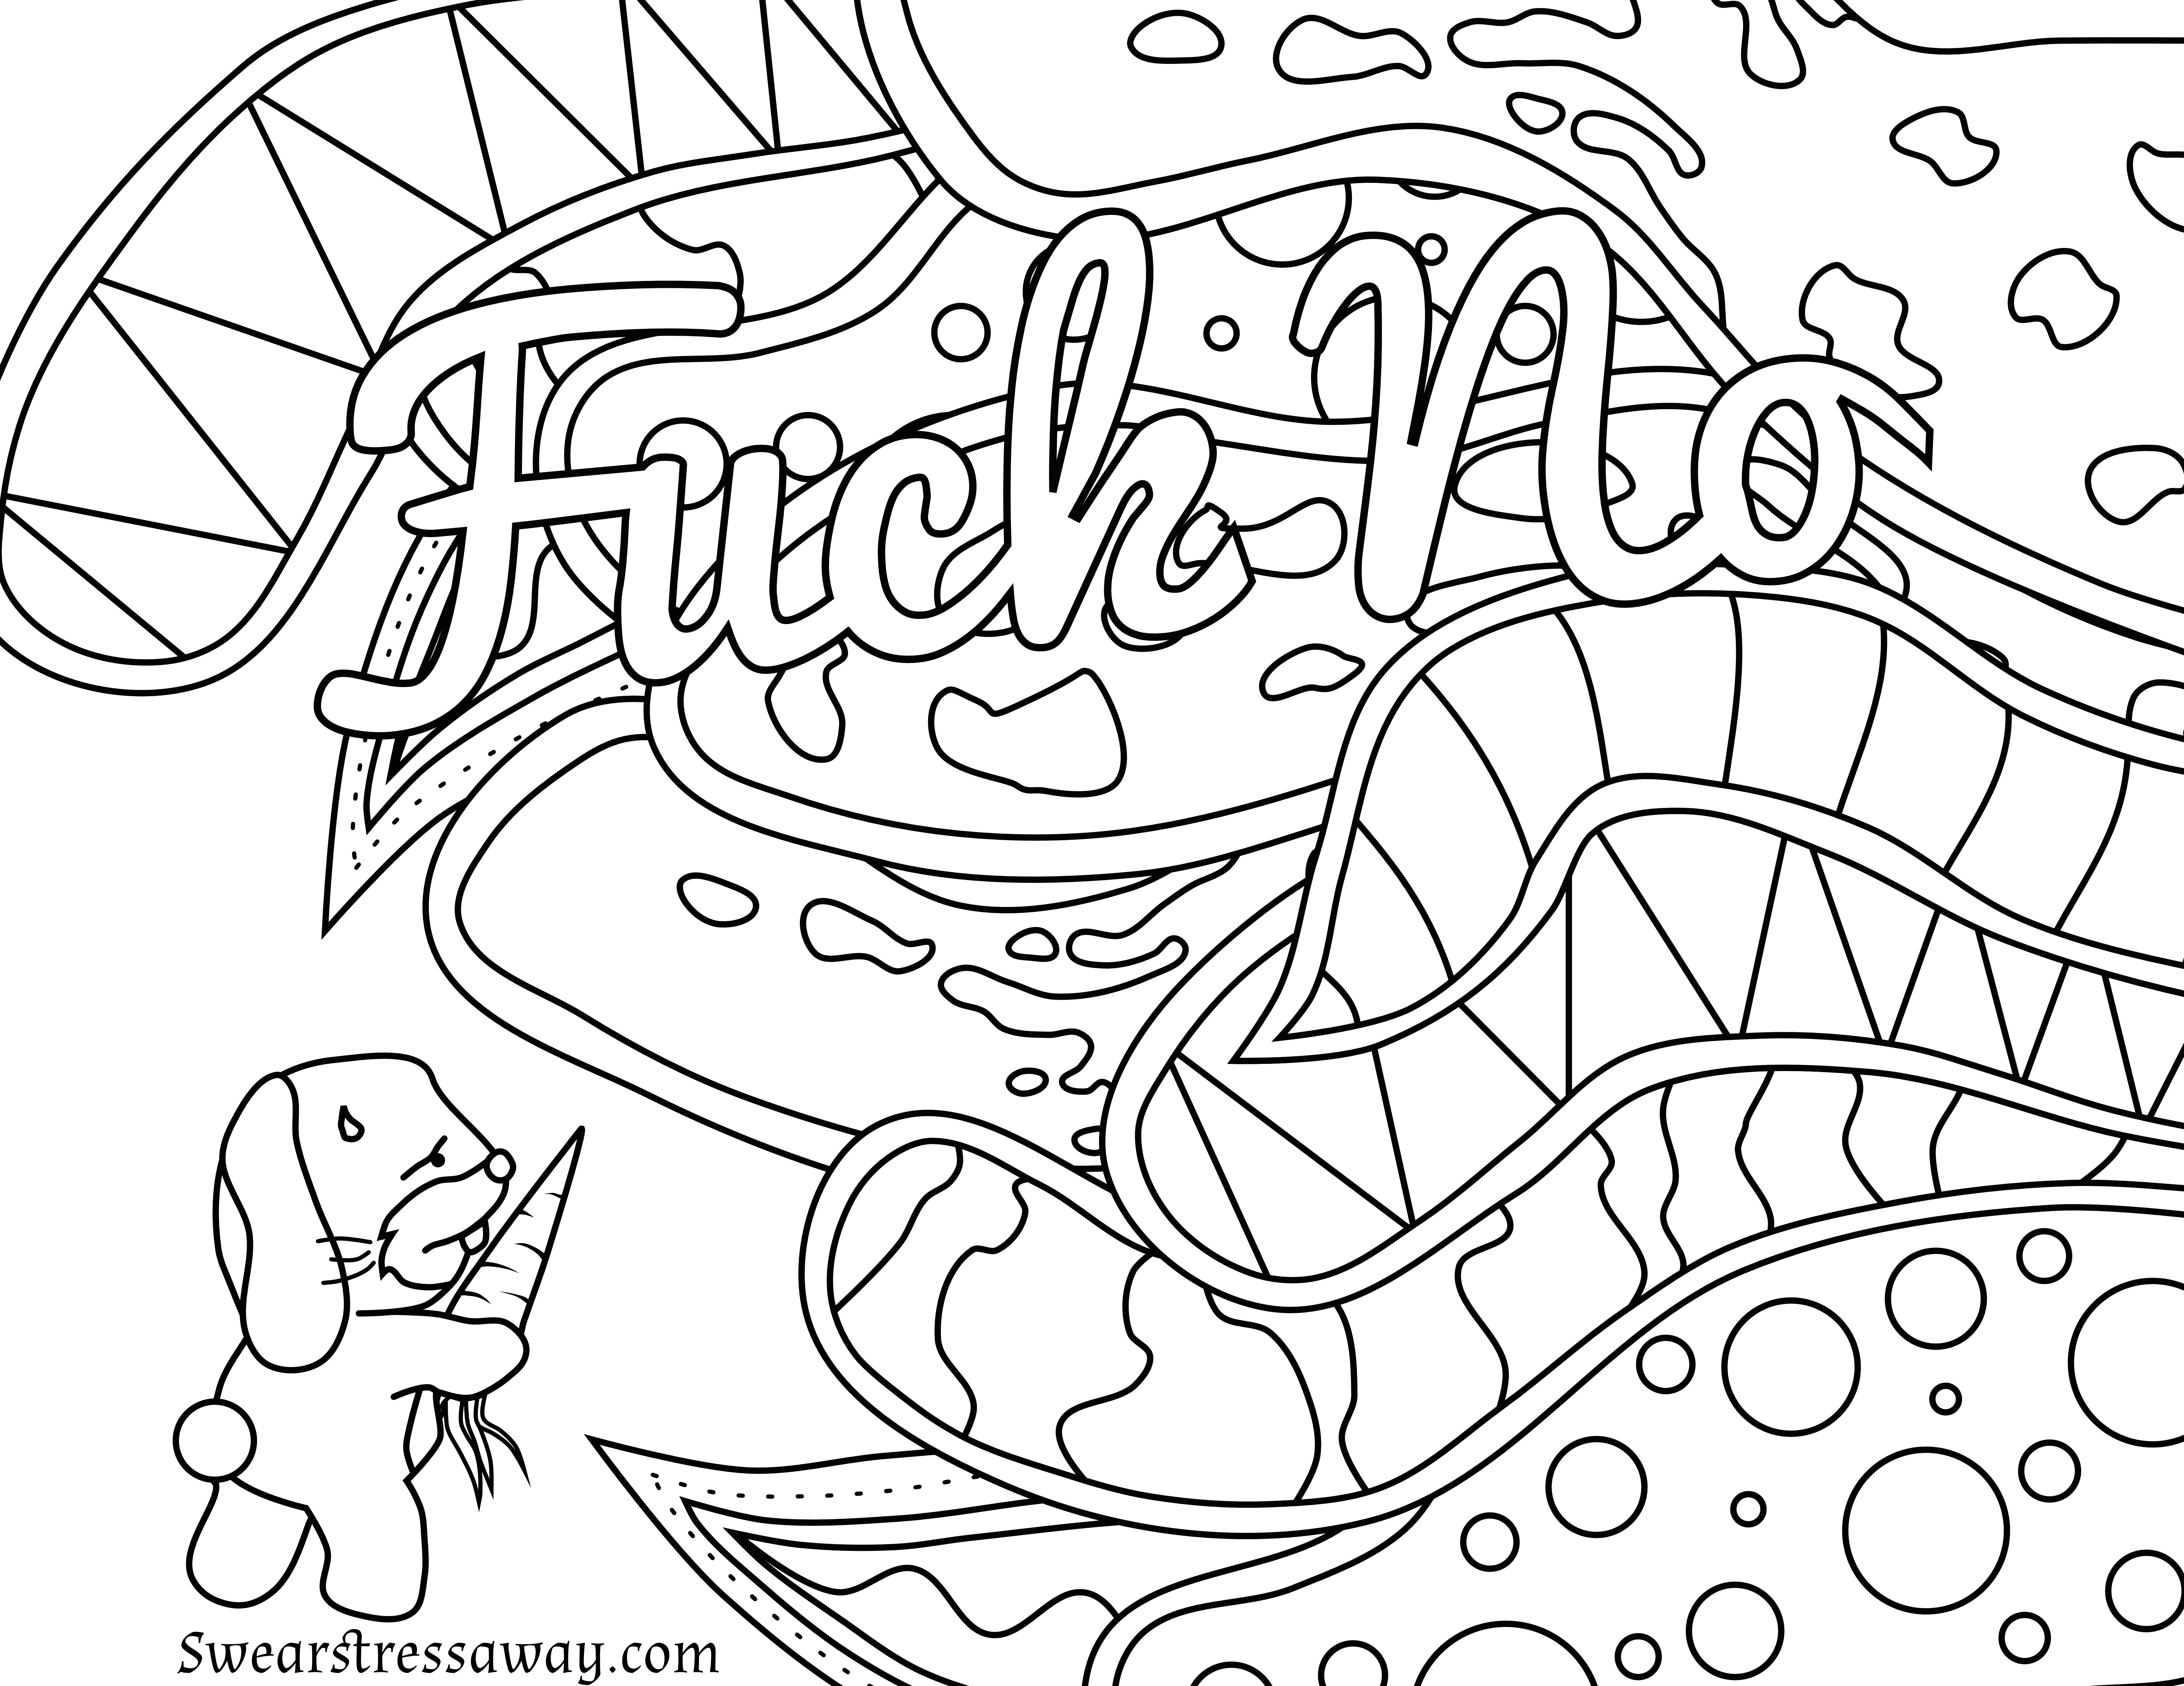 Free Printable Coloring Page Fuck No Swear Word Coloring Page